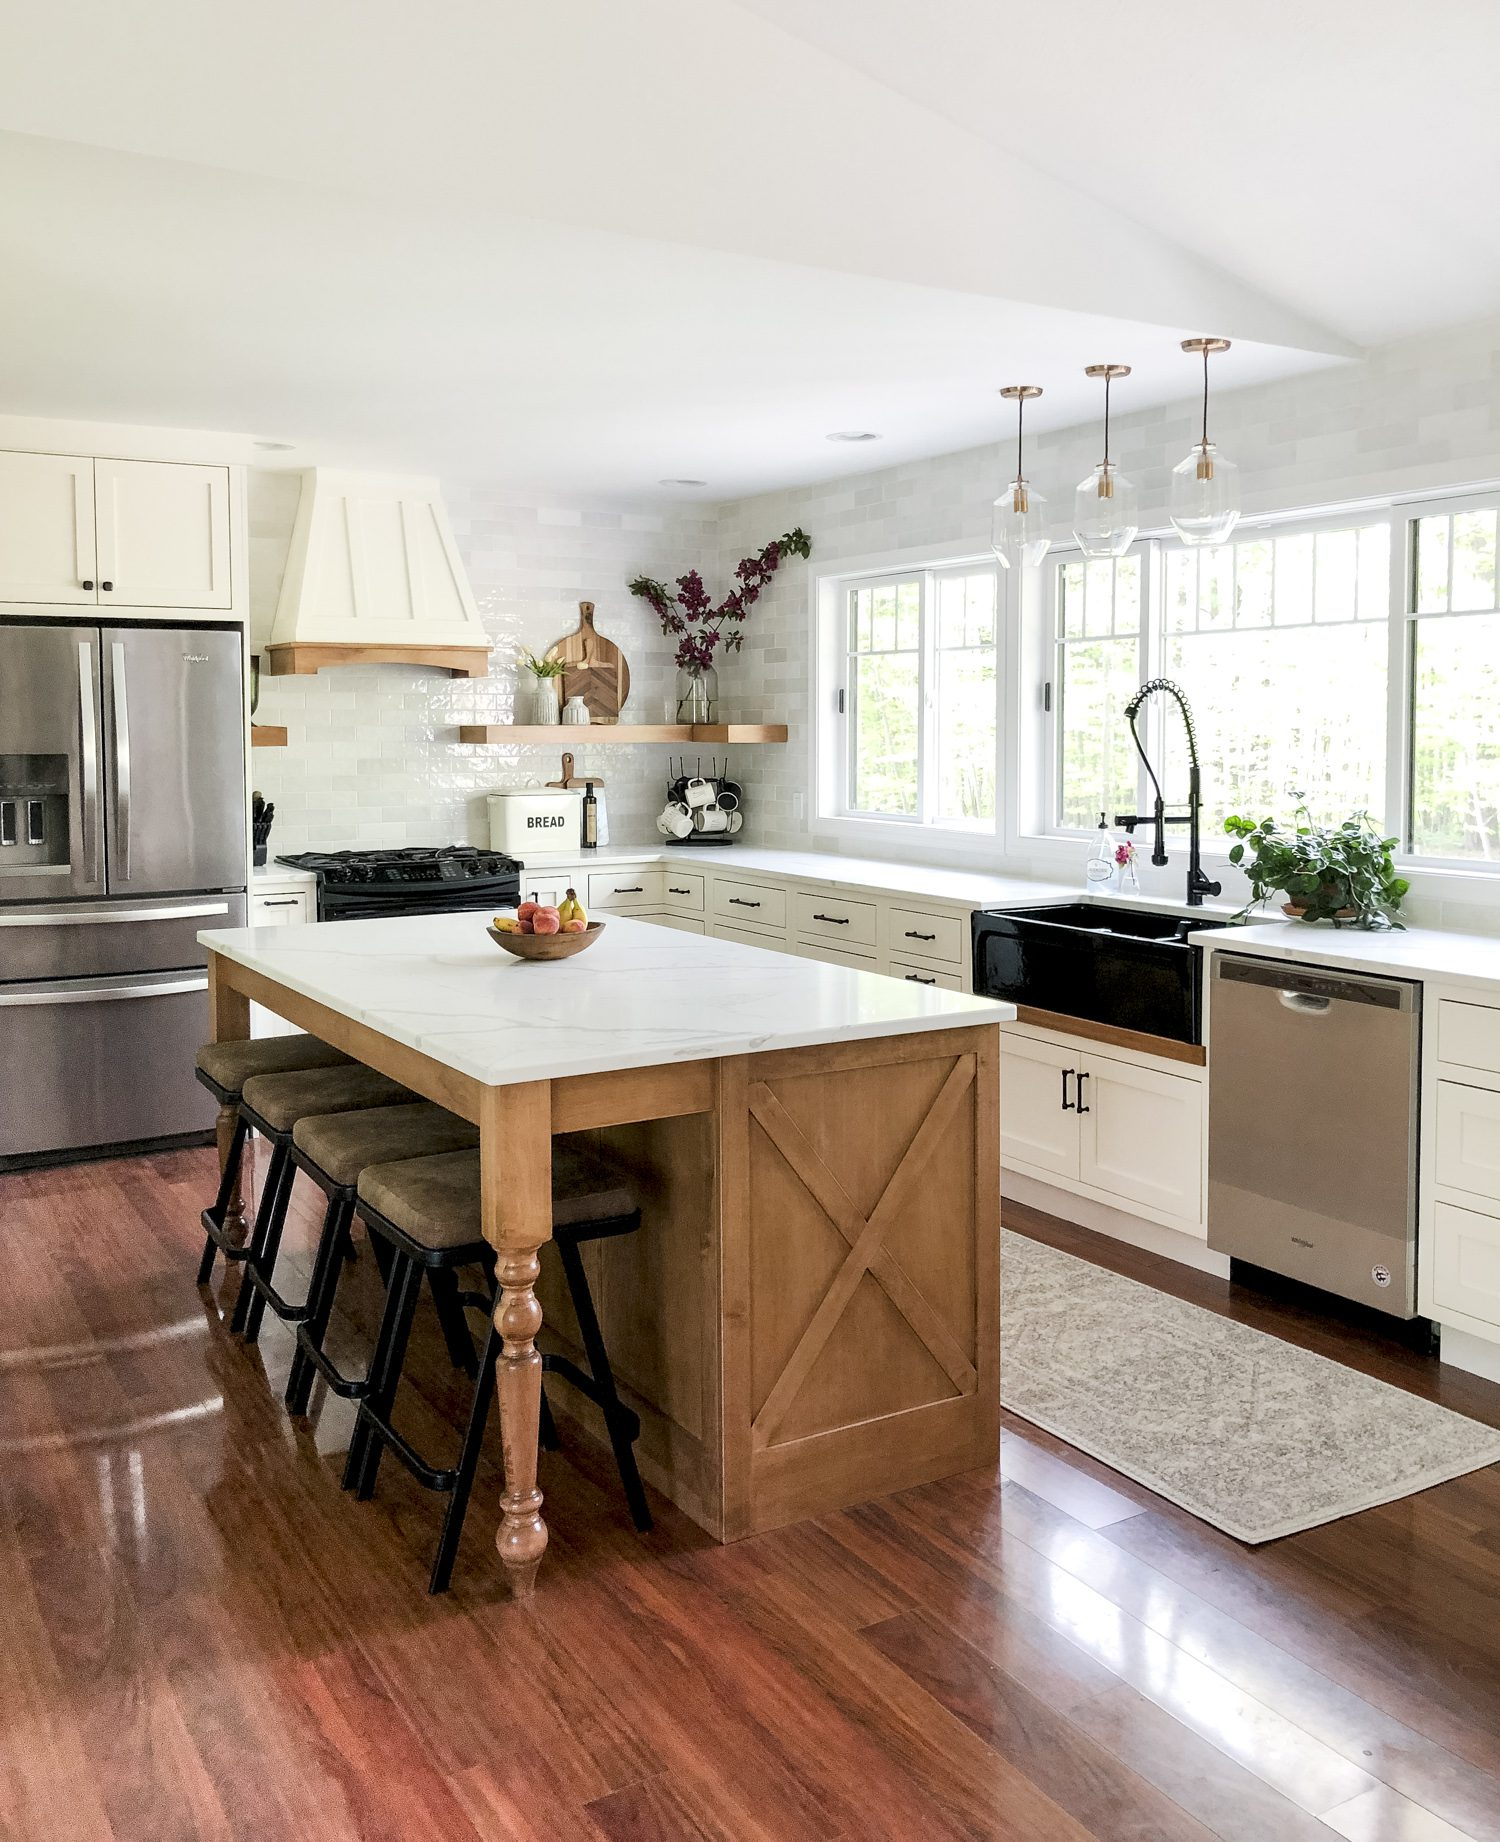 Do you love modern farmhouse style? Here are tips for how to use a black farmhouse sink to anchor your kitchen remodel design. Plus, how to mix finishes! #fromhousetohaven #blackfarmhousesink #farmhousesink